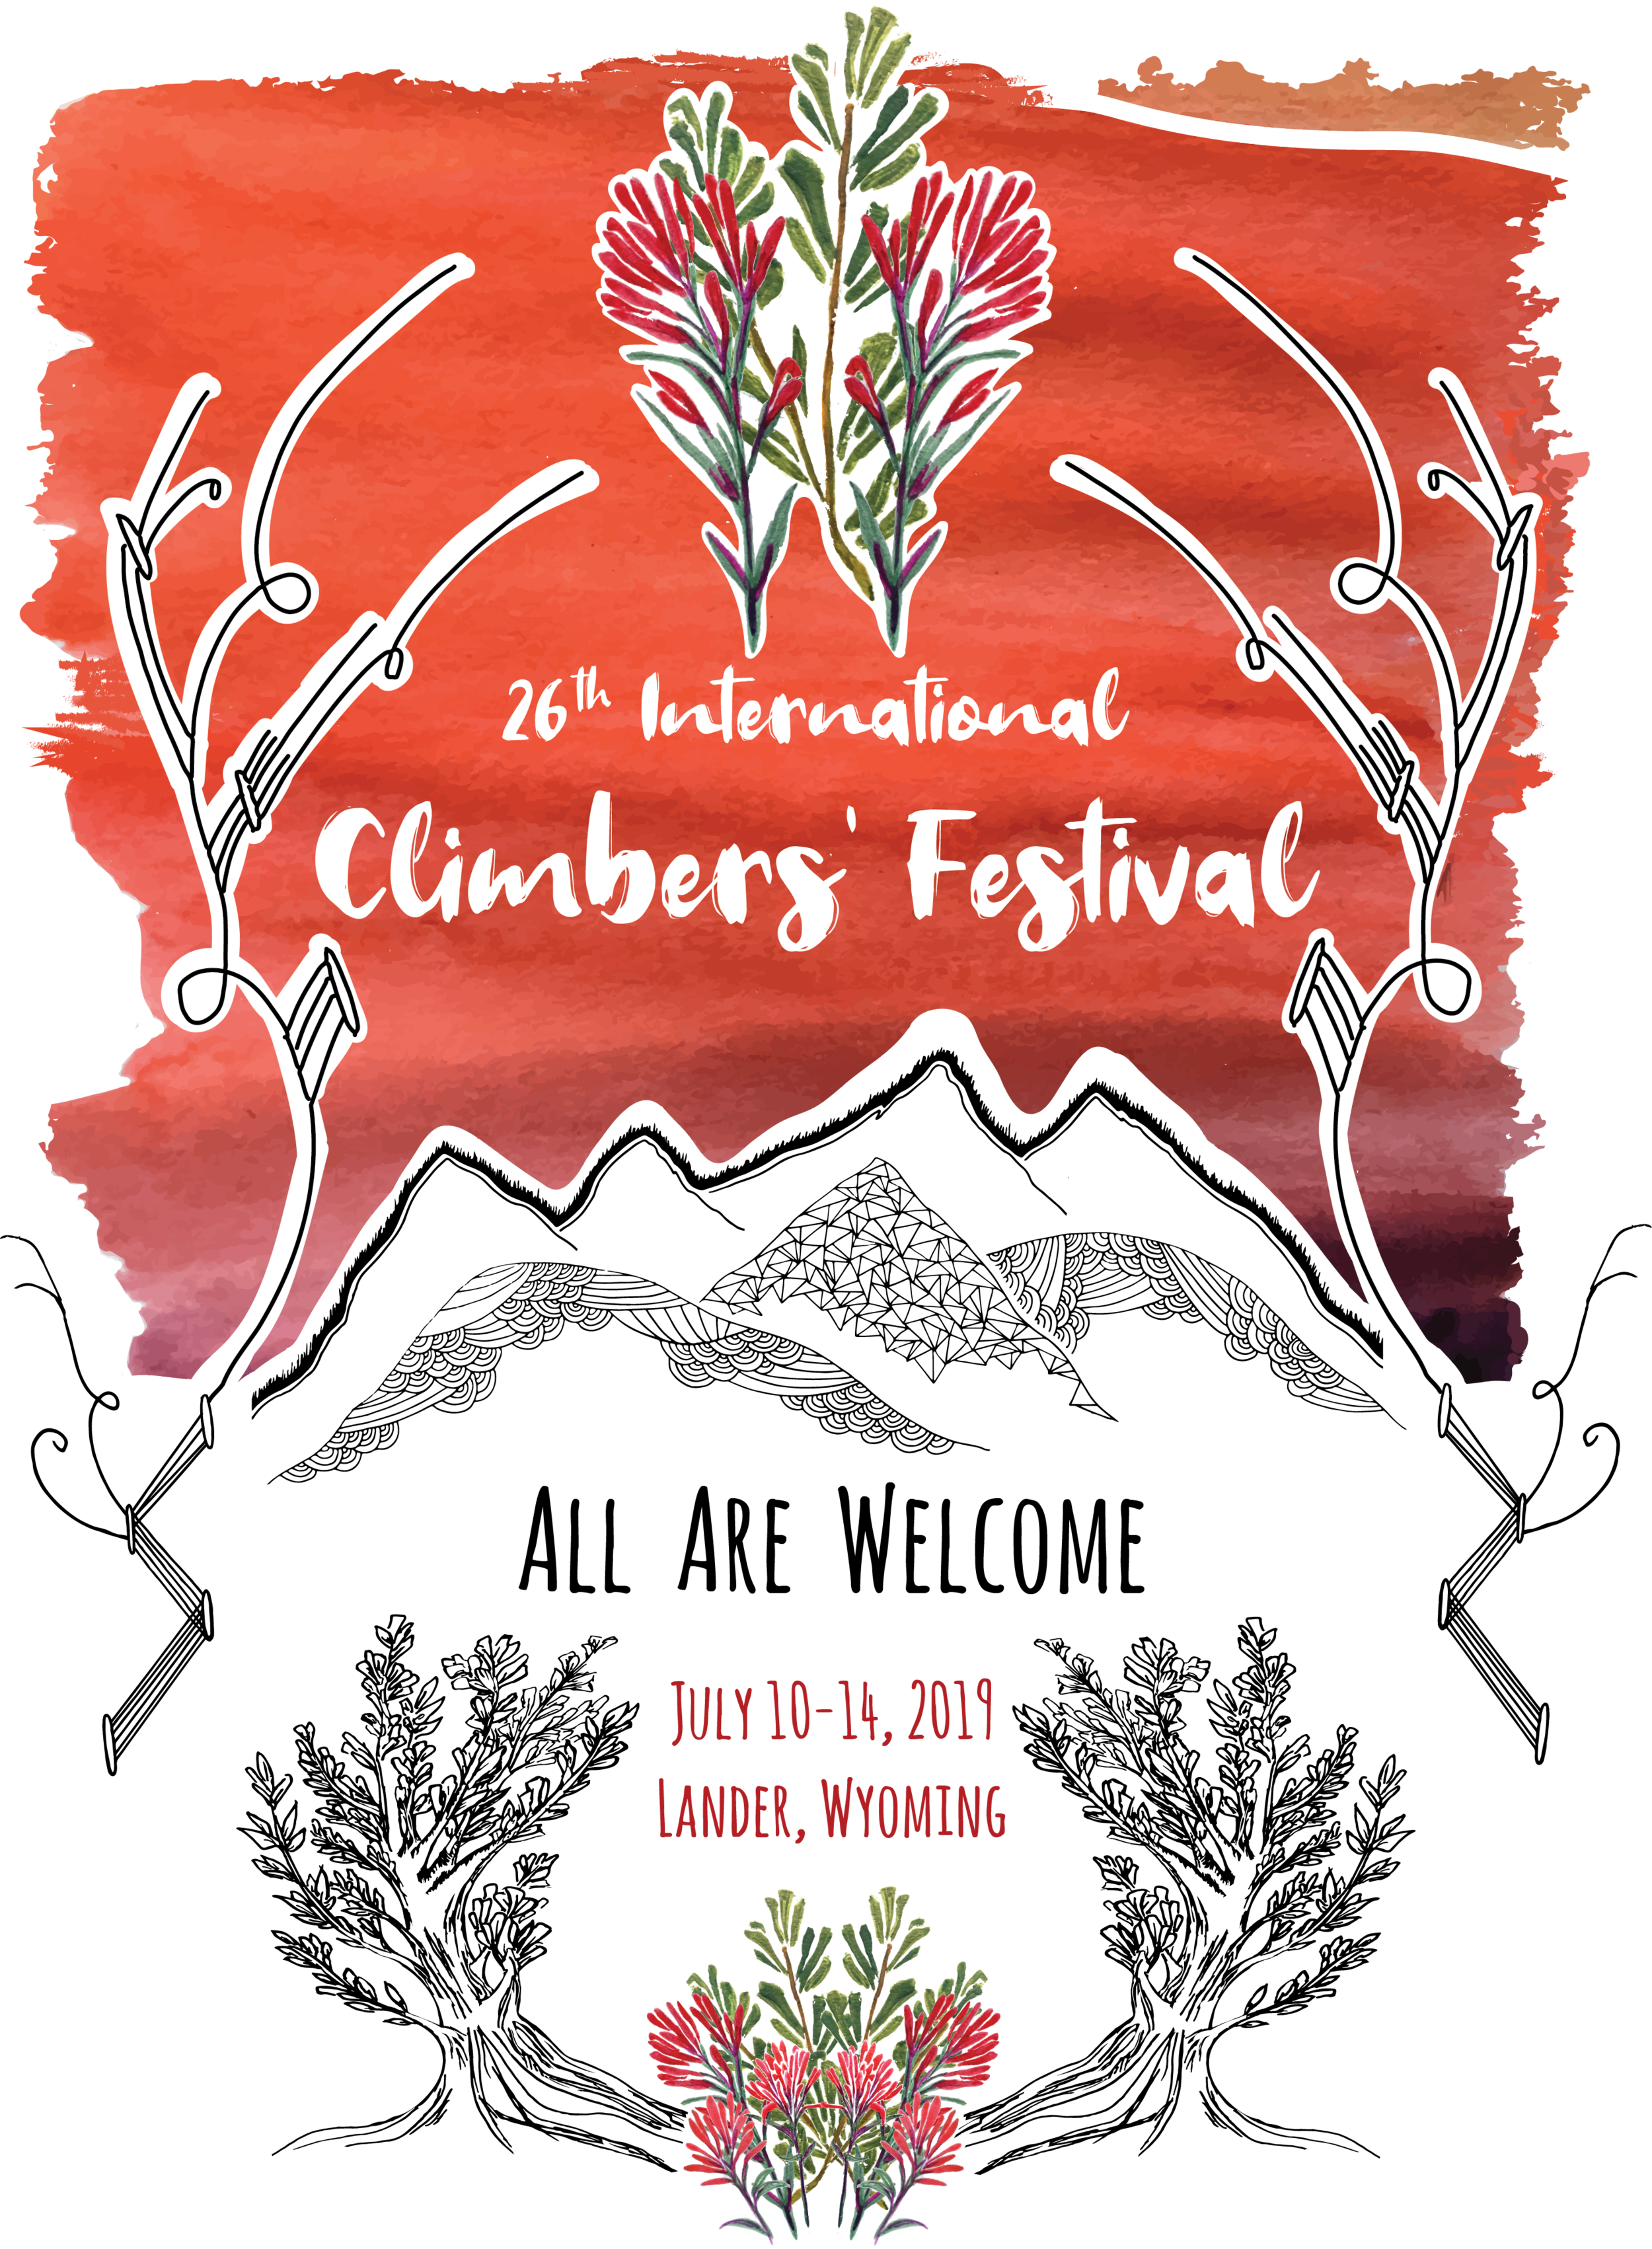 - For many climbers, rock climbing is their haven, their safe spot. Some even say the sport saved them. For every climber the story is different, and for some, there exist more closed doors, more boundaries, and more fence-lines than others. At the 26th International Climbers' Festival, we hope to both highlight the boundaries climbers fight against, and showcase a community working to diminish them.To be a climber one must inherently push against a force of gravity, but that is not the only force the sport allows us to confront. Whether your challenges lie in your climbing, your mind, or your community, this year we remember that pushing back against boundaries is why we climb in the first place— Alana Benson